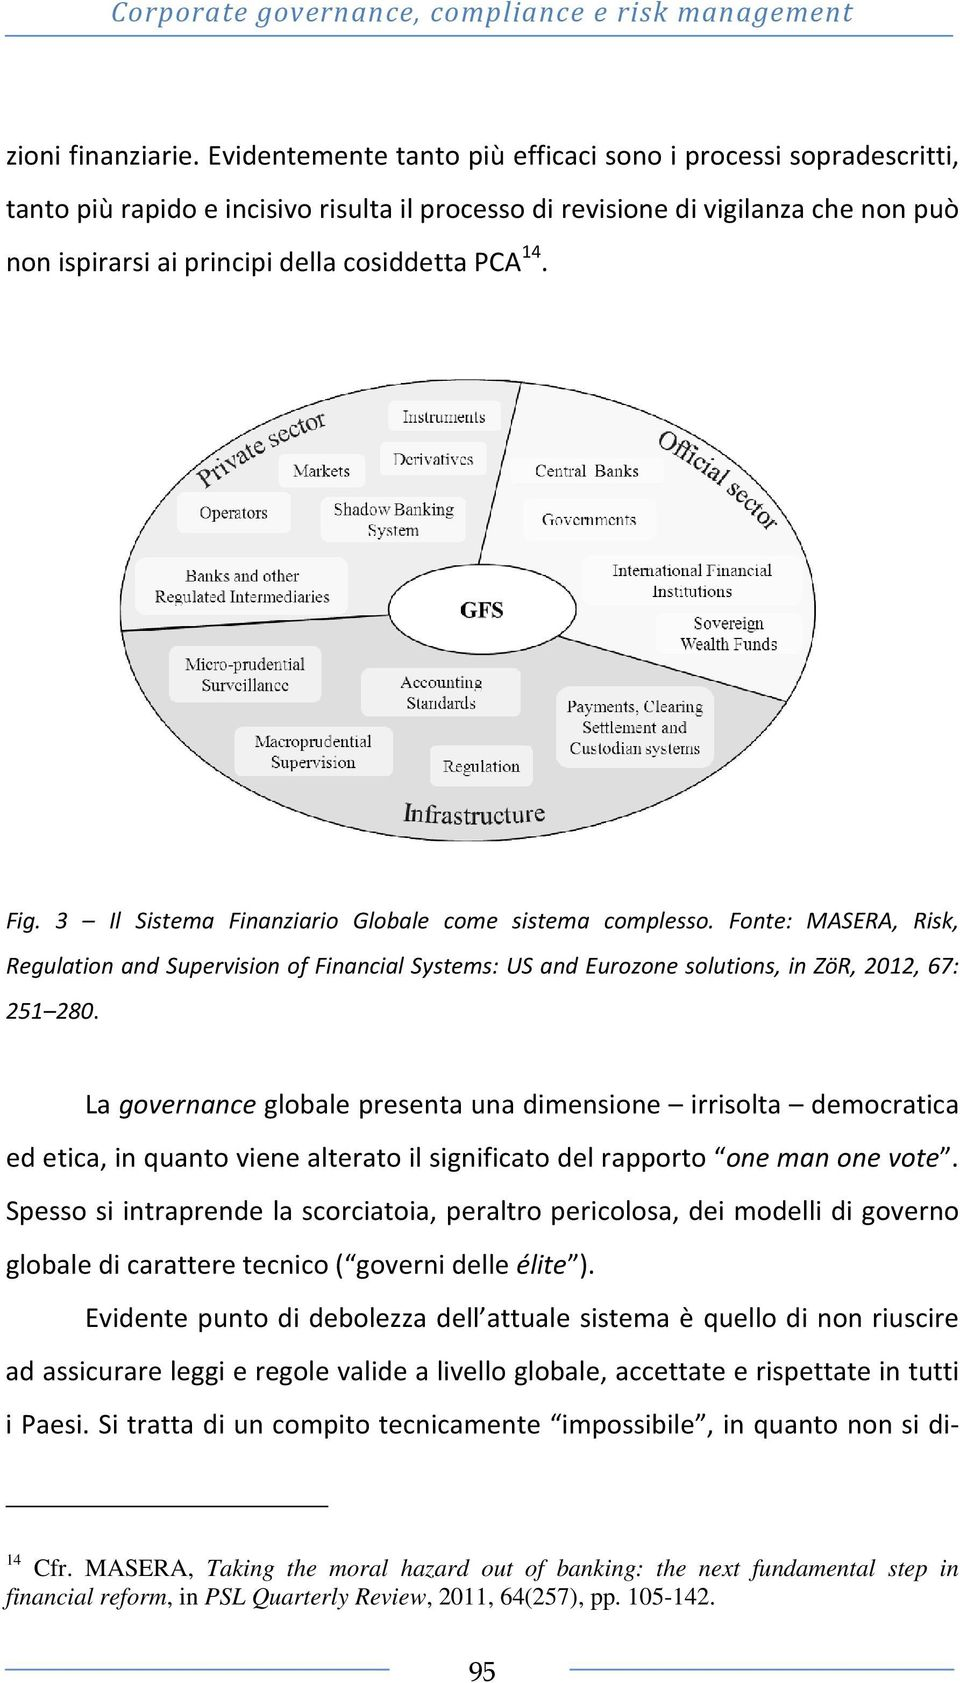 14. Fig. 3 Il Sistema Finanziario Globale come sistema complesso. Fonte: MASERA, Risk, Regulation and Supervision of Financial Systems: US and Eurozone solutions, in ZöR, 2012, 67: 251 280.